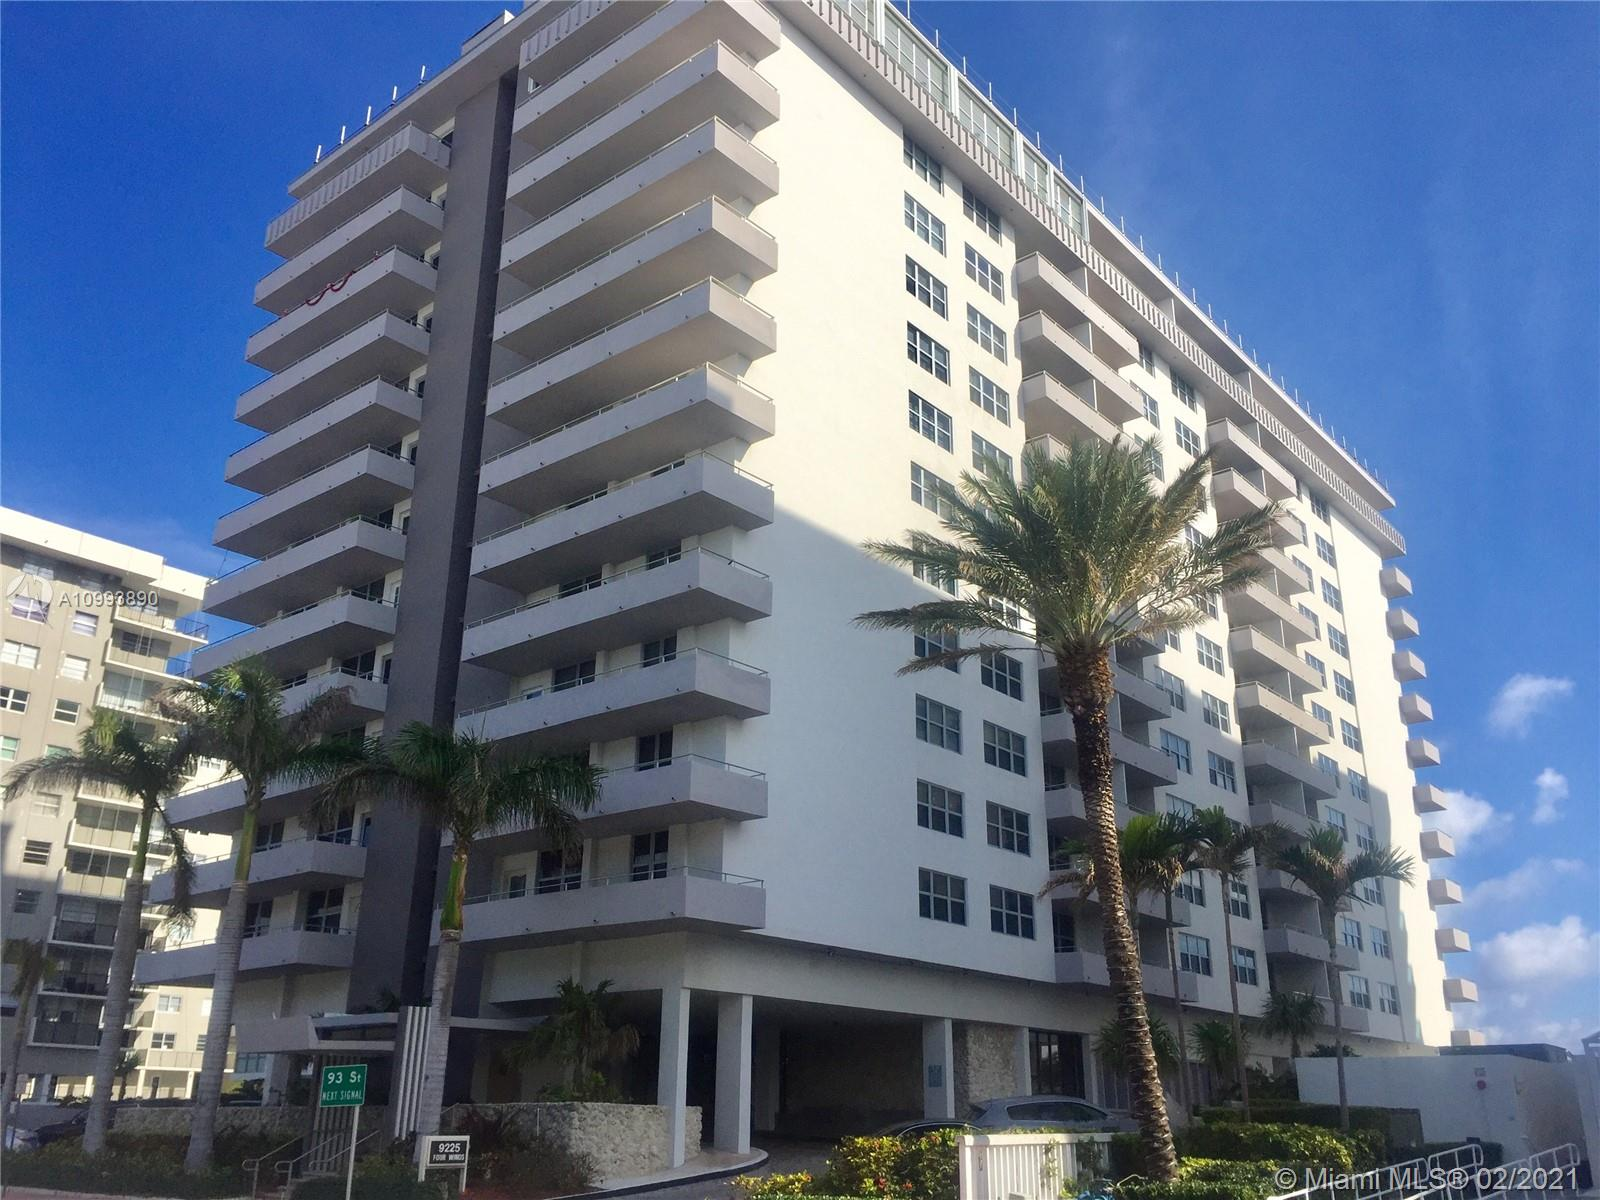 Four Winds #711 - 9225 Collins Ave #711, Surfside, FL 33154